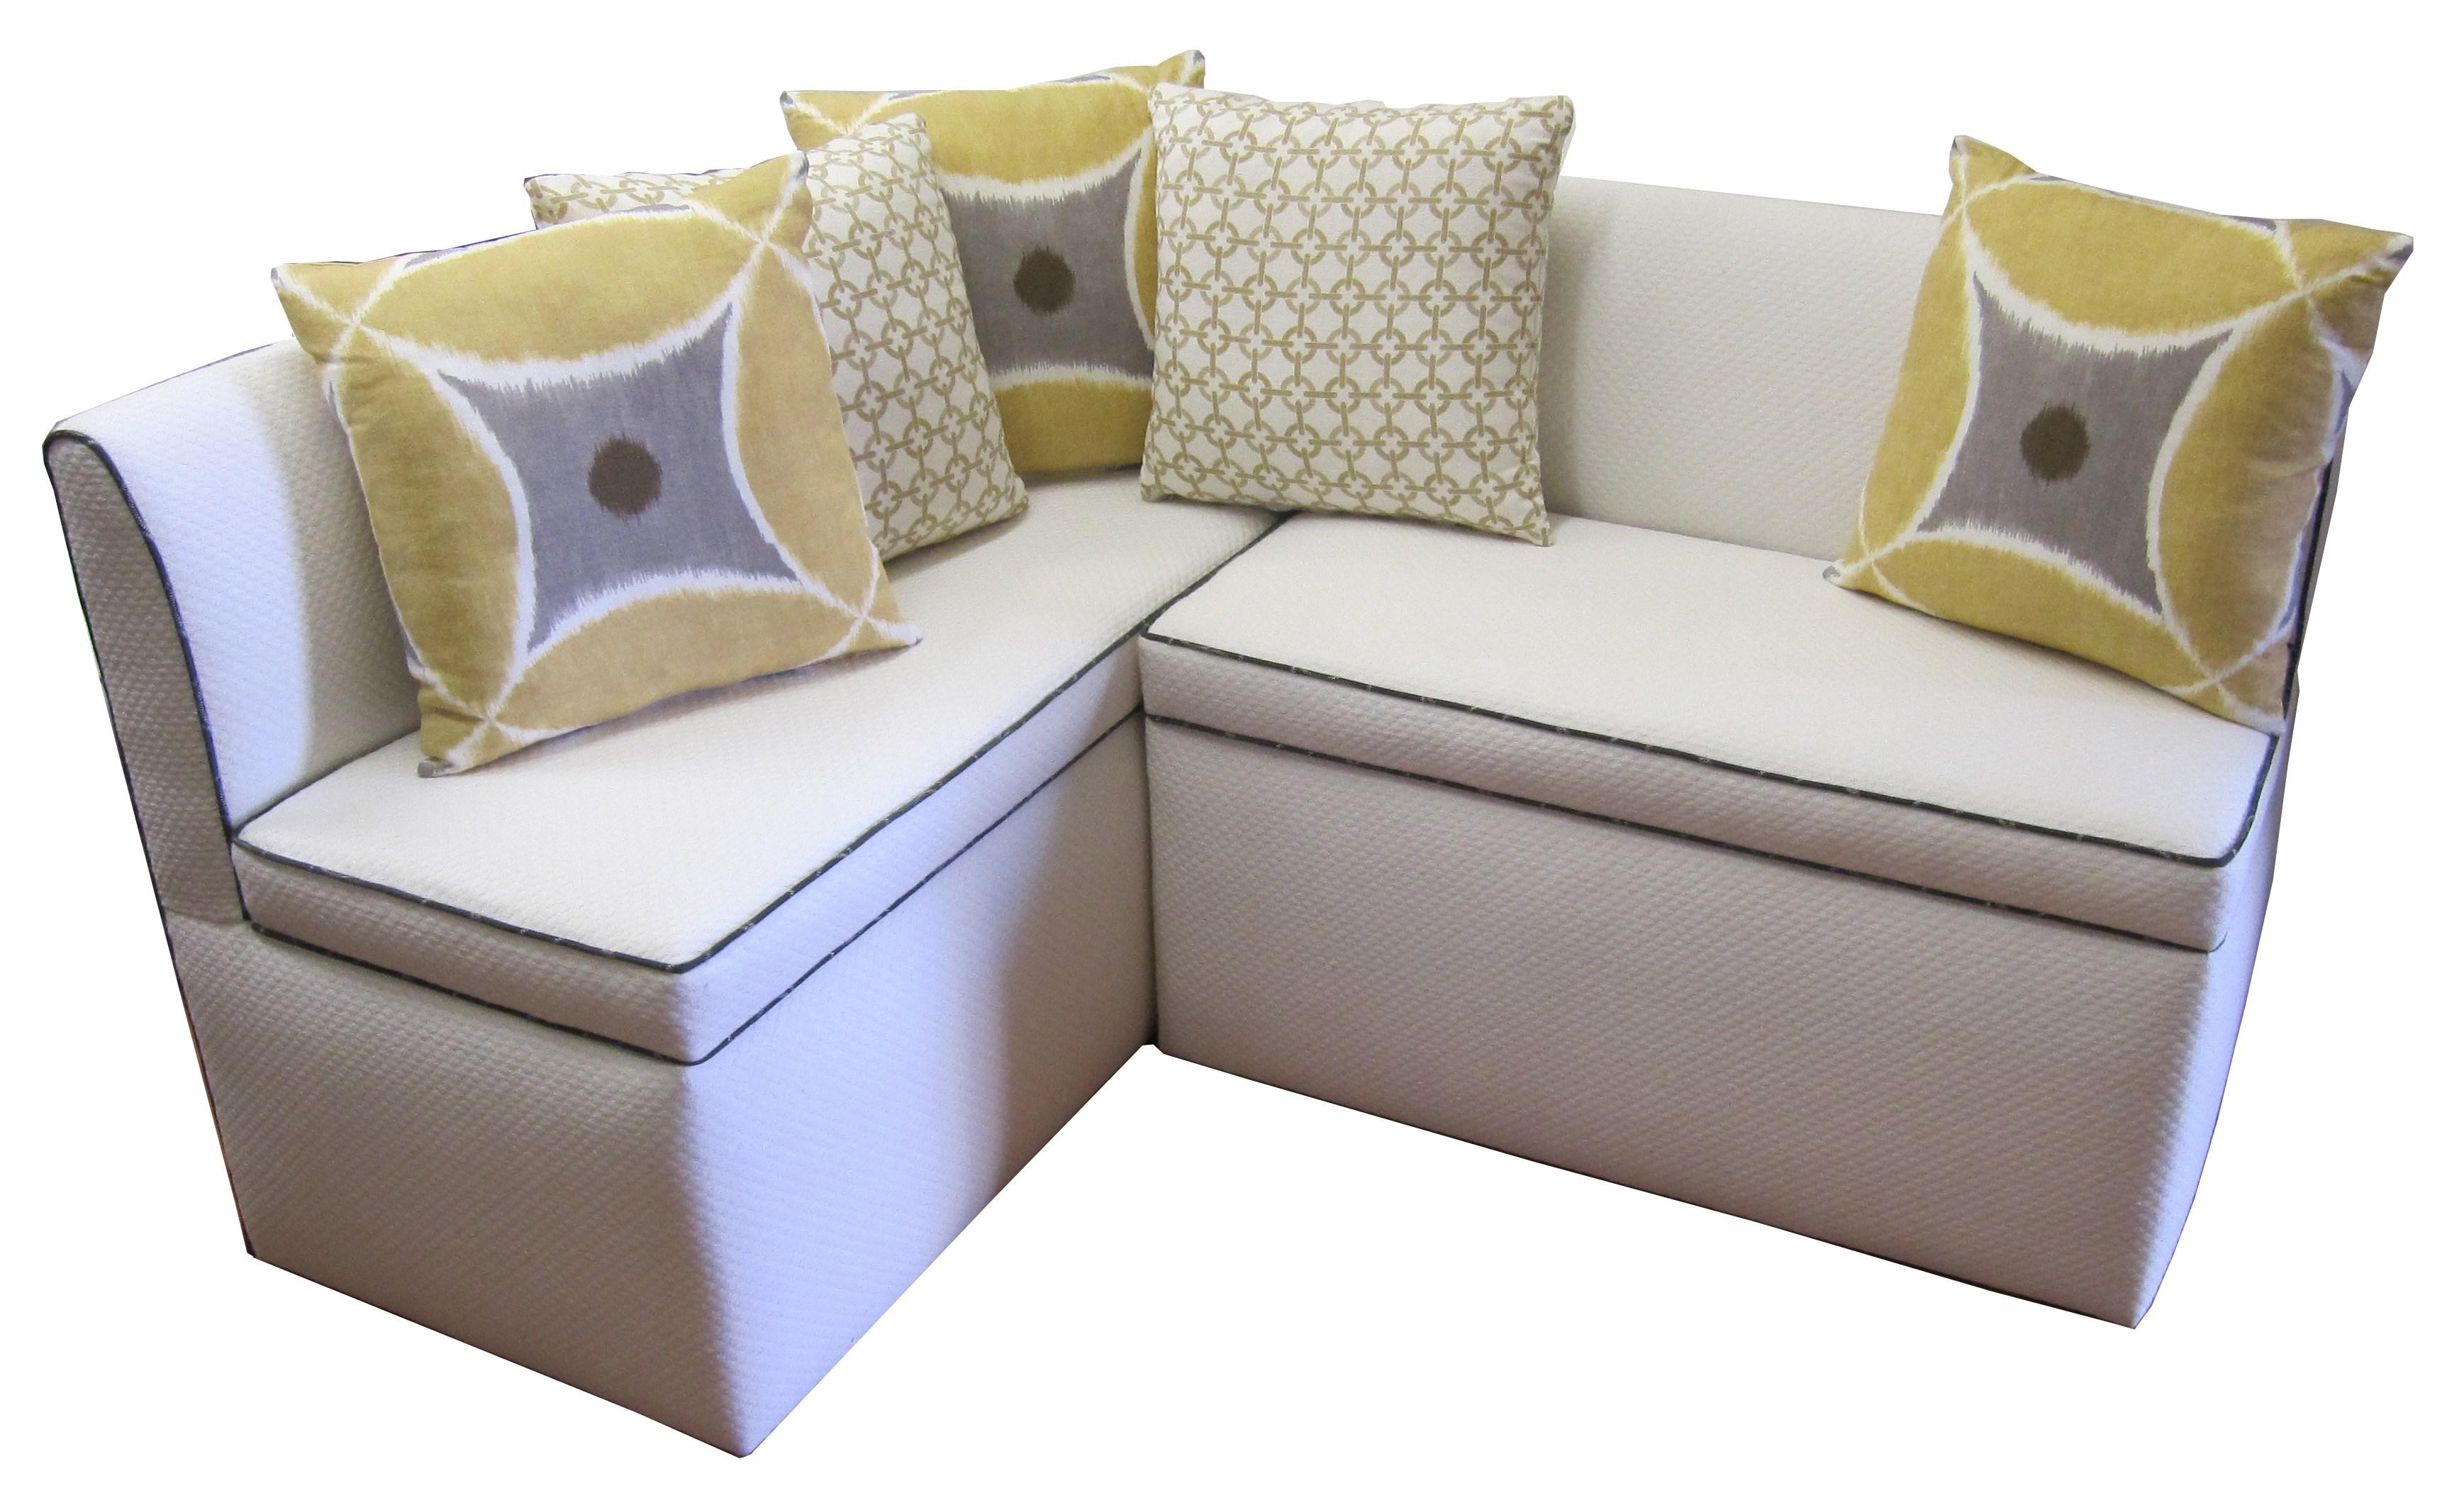 Bench Cushion Sofa With Concept Gallery 25269 | Kengire In Bench Cushion Sofas (Image 5 of 20)